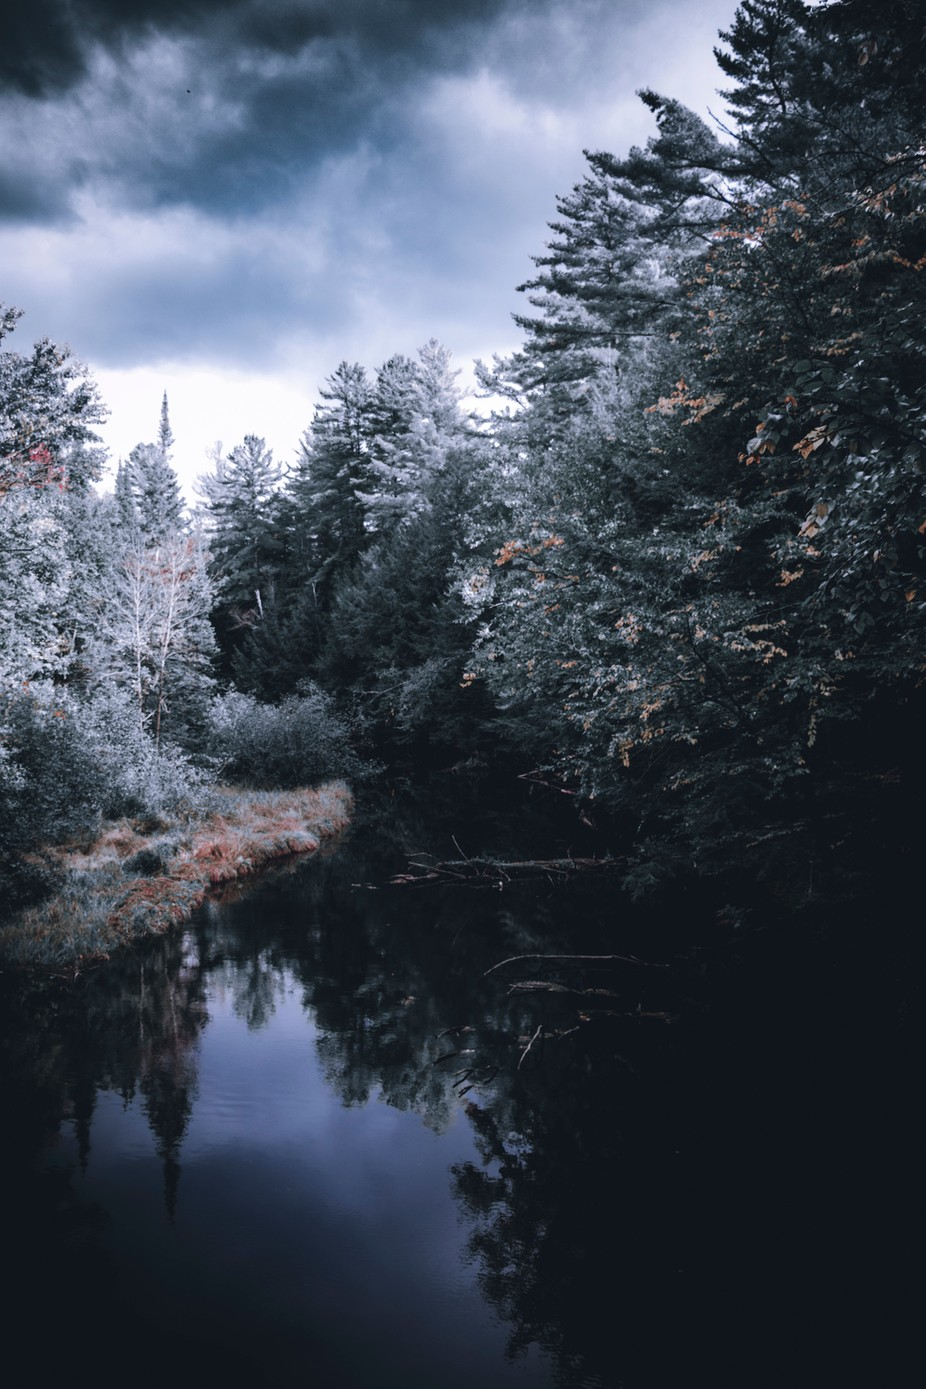 Mystical forest by A_Shukla - Tall Trees Photo Contest